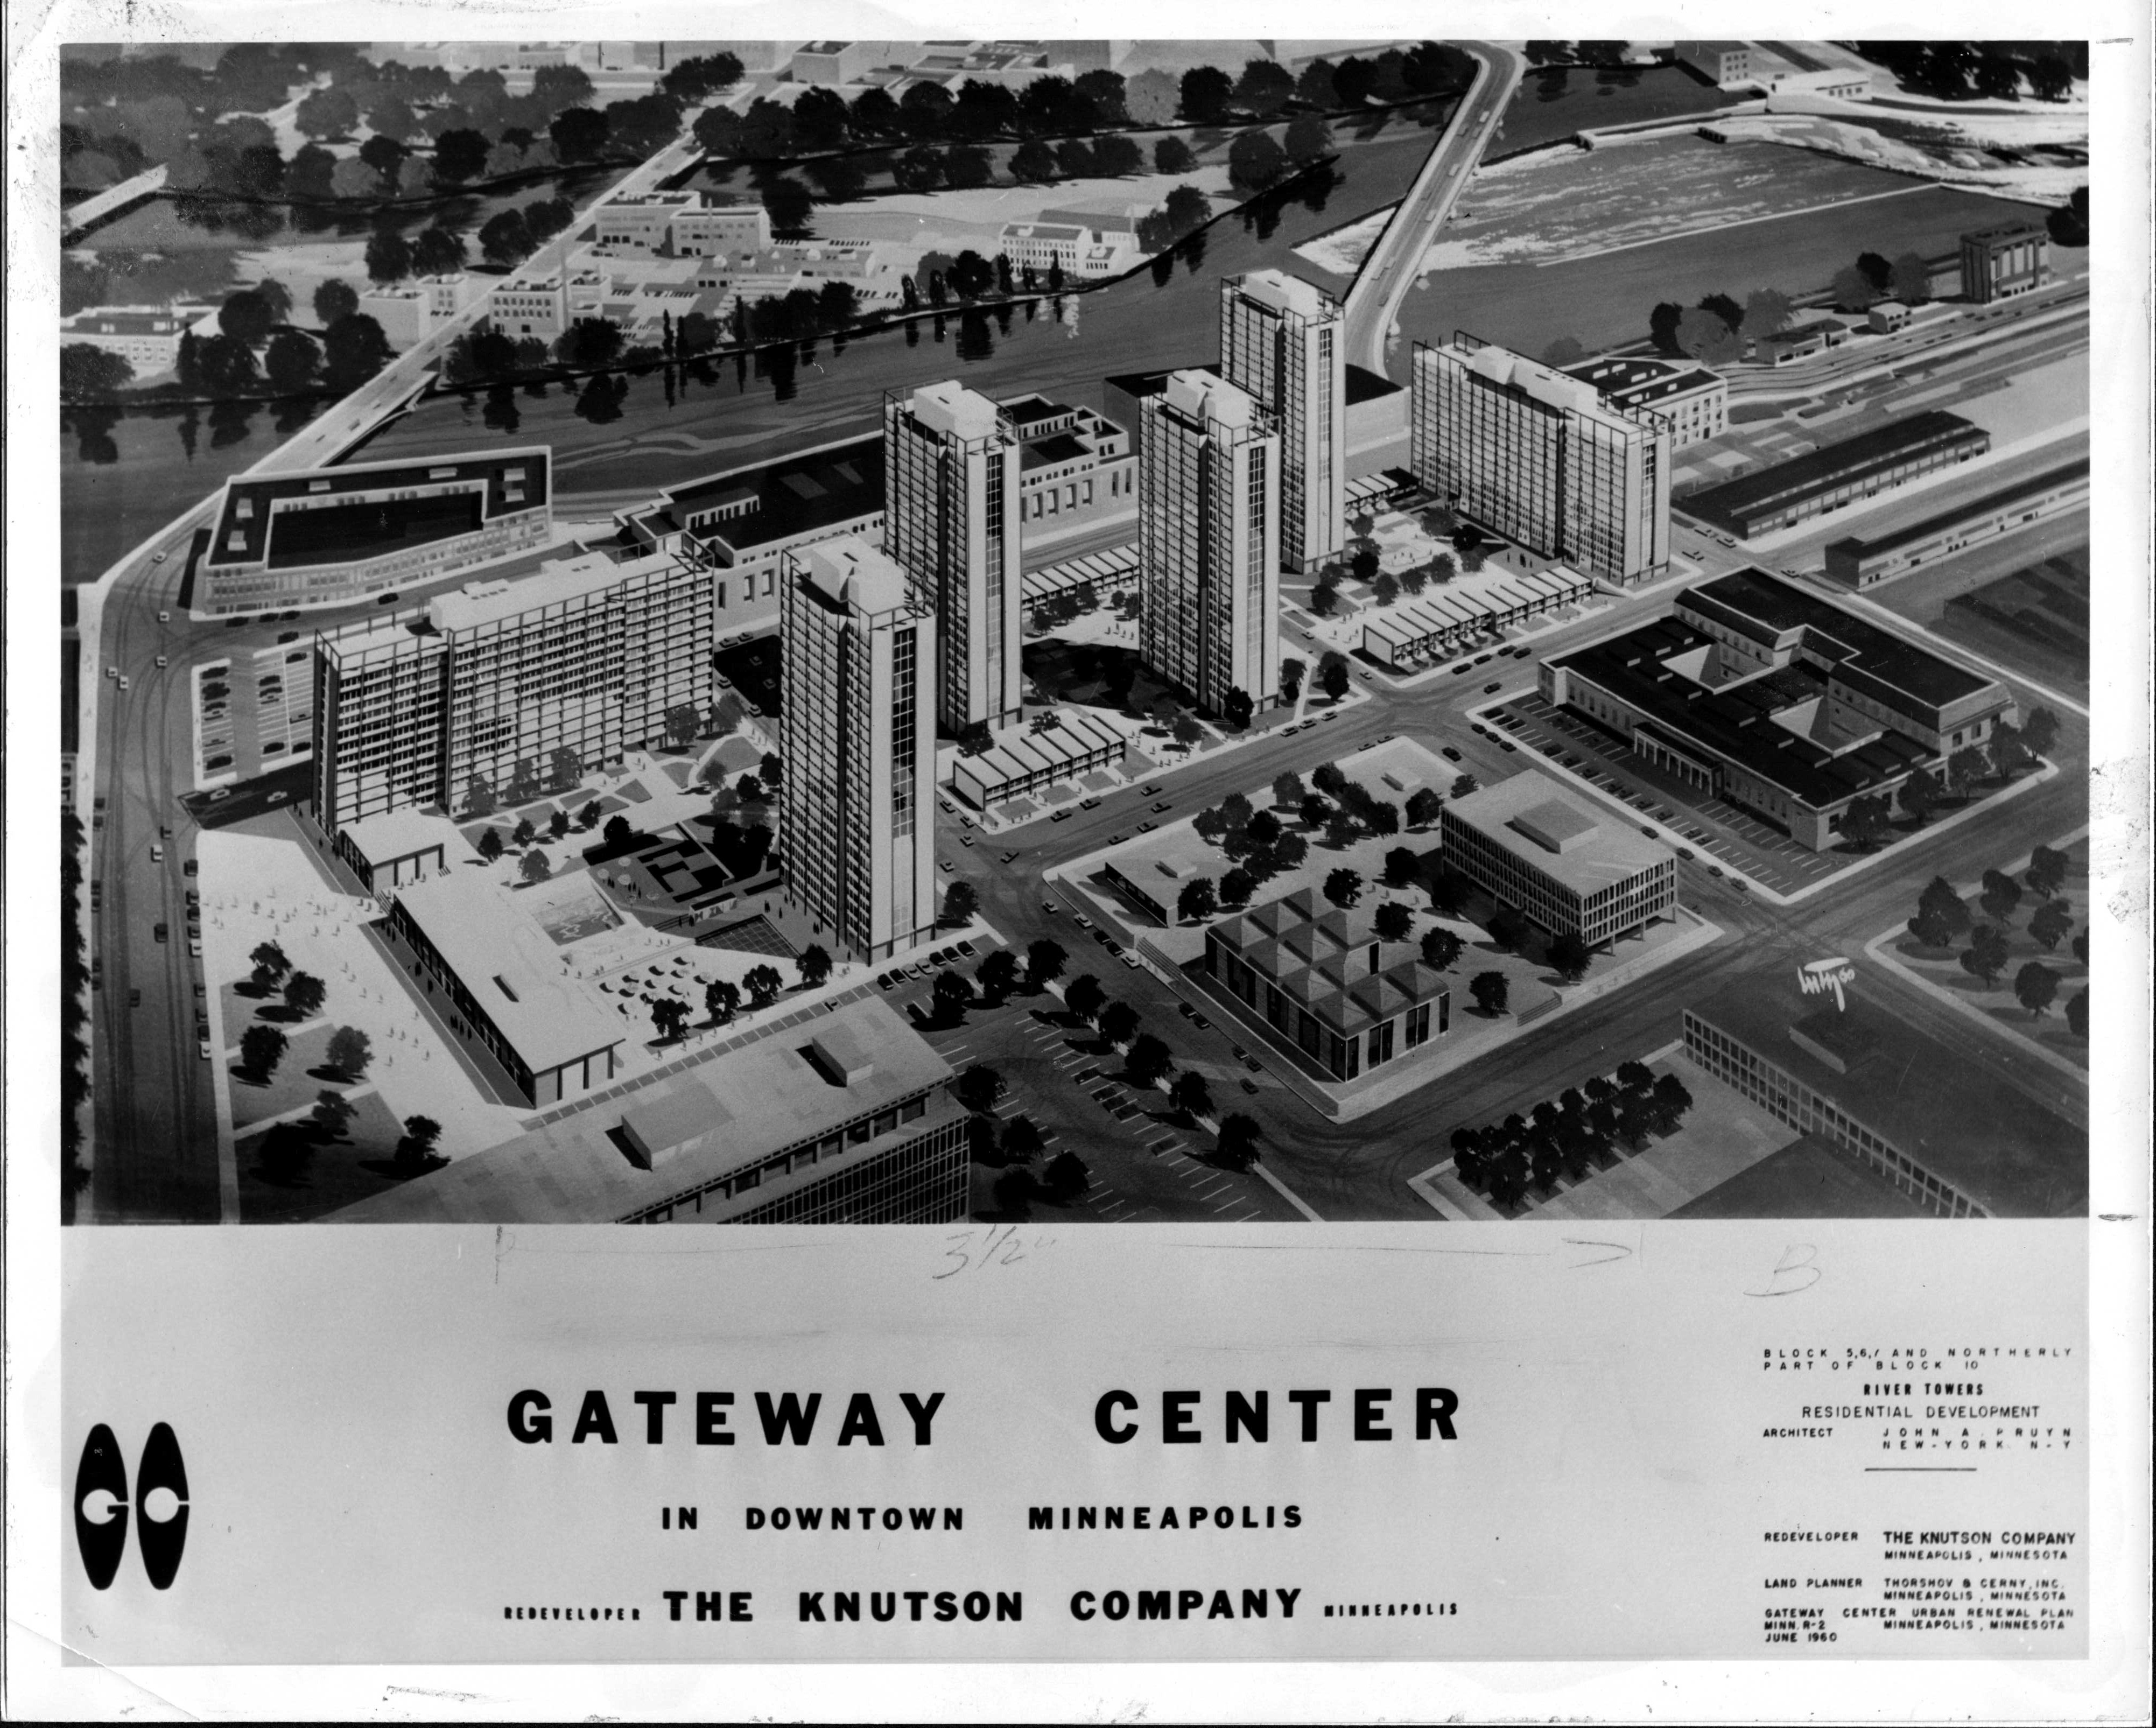 new gateway center, publicity image, side 1